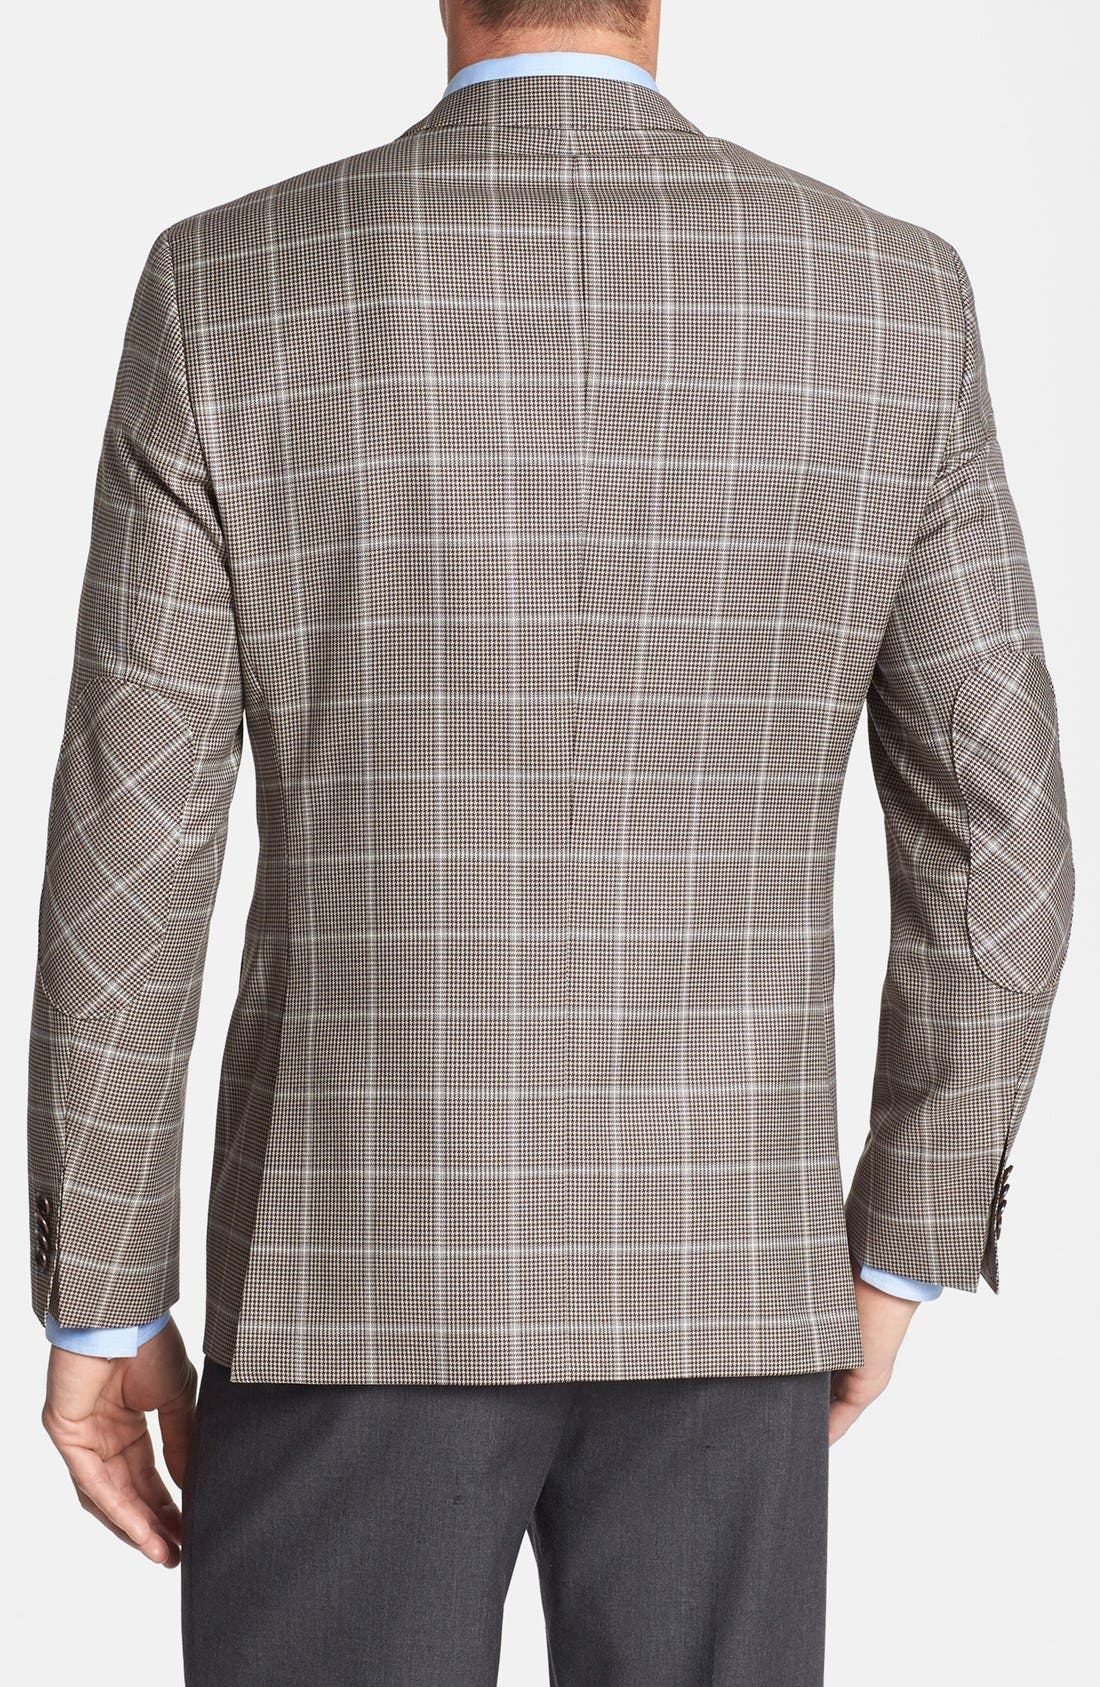 Alternate Image 2  - BOSS HUGO BOSS 'The Smith' Trim Fit Plaid Sportcoat